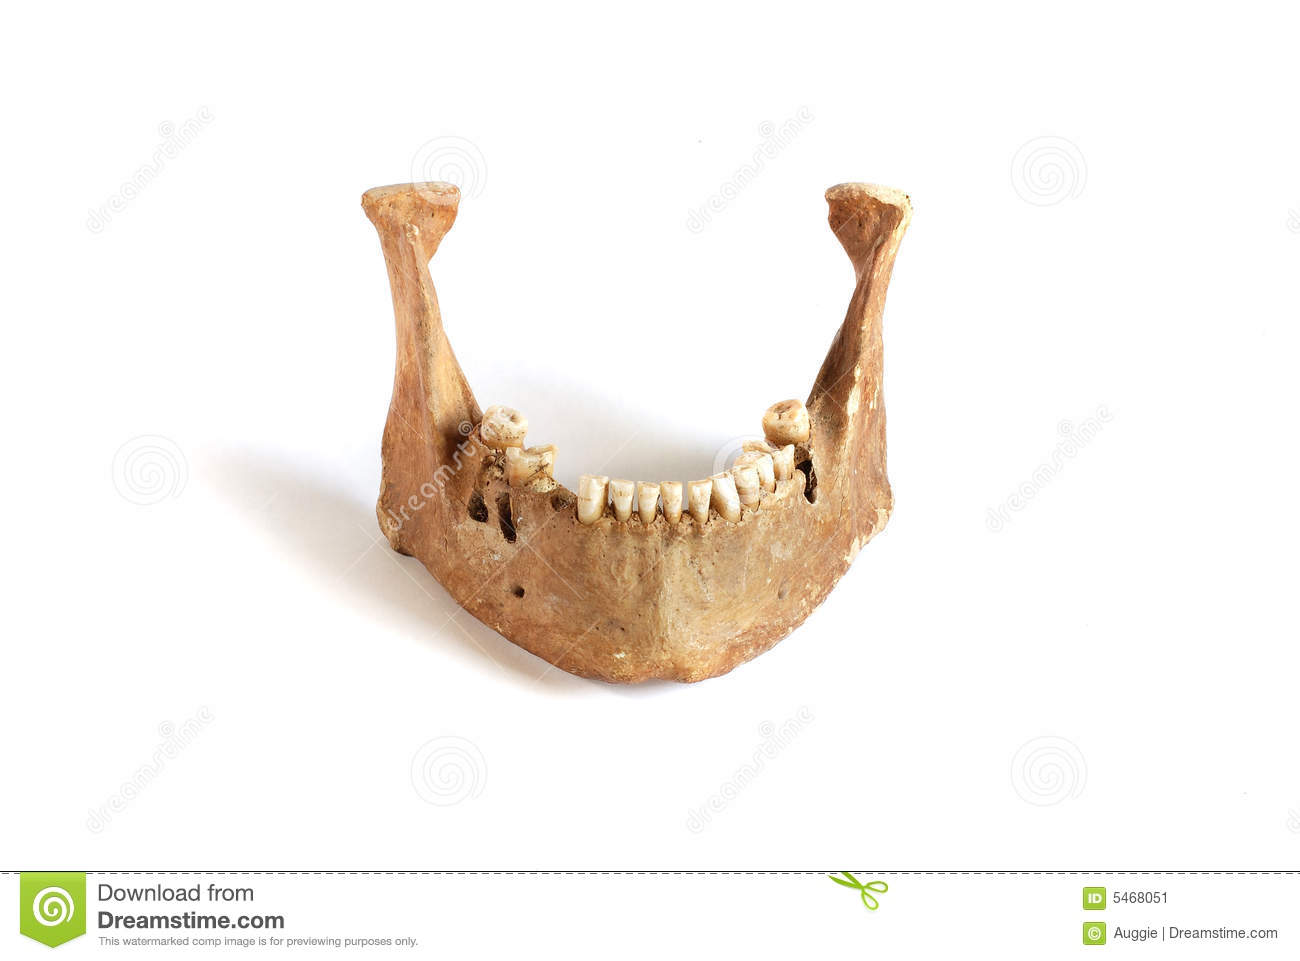 Gorilla skull stock image. Image of horror, face, anatomy - 36598513